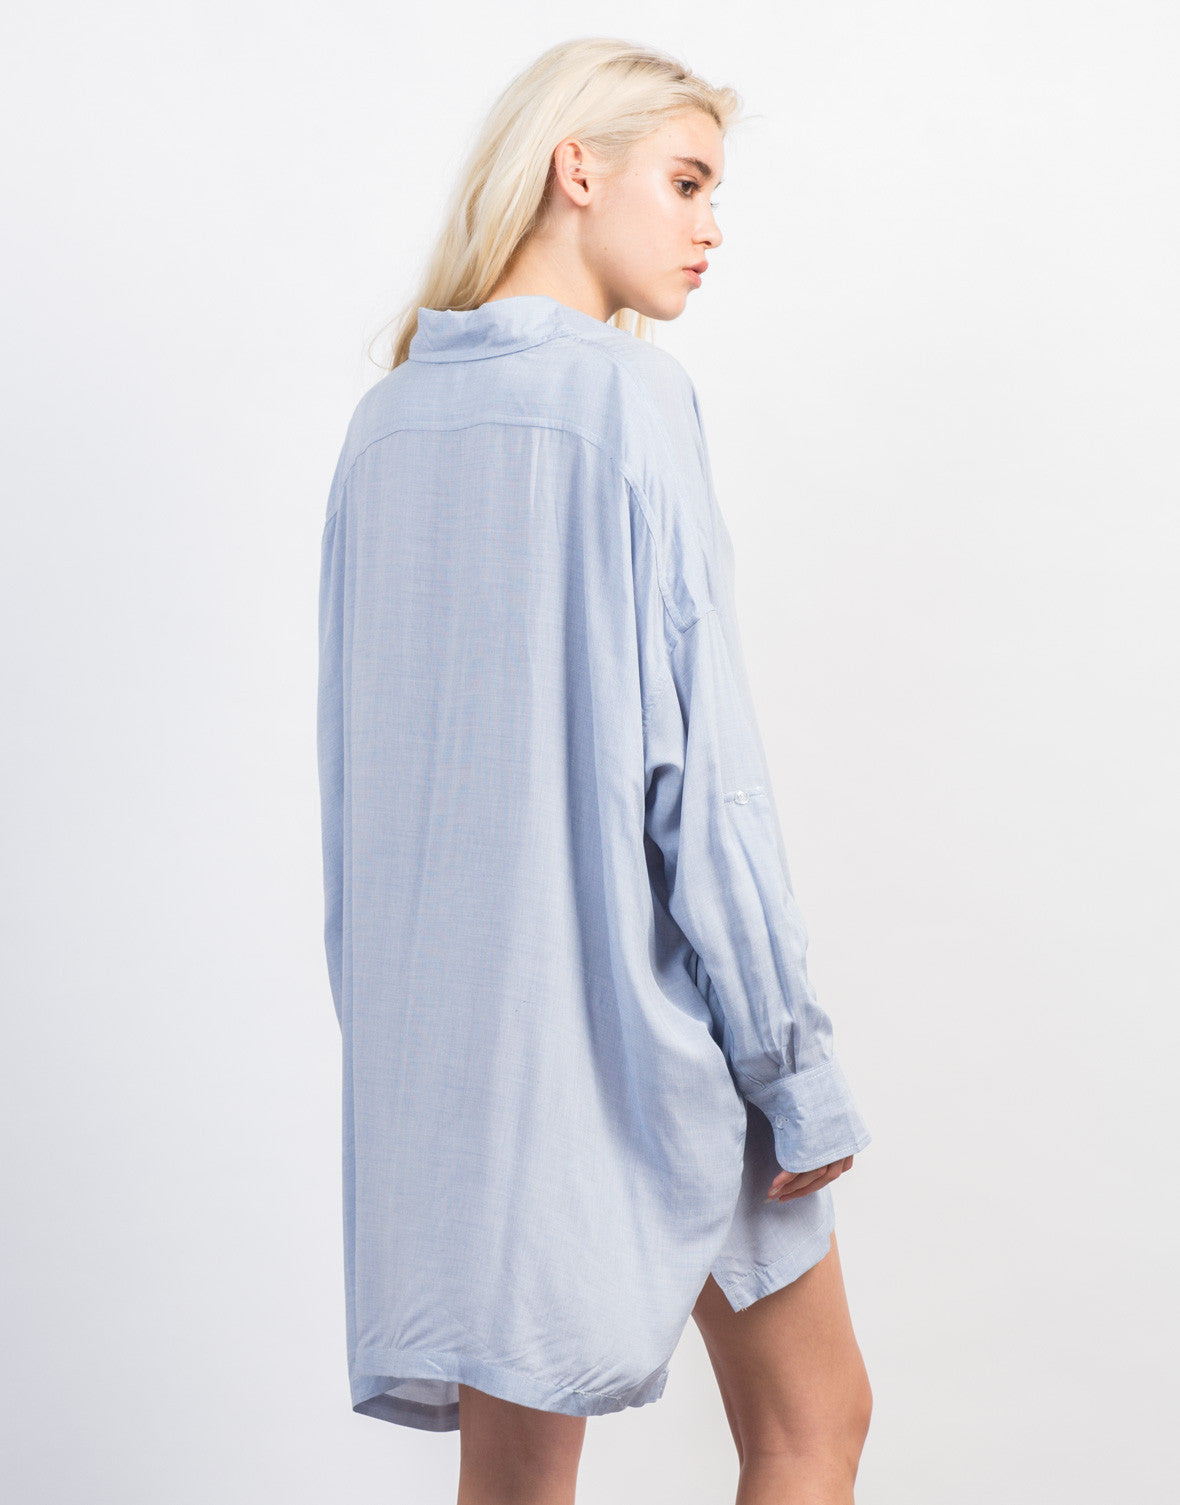 Back View of Oversized Button Up Shirt